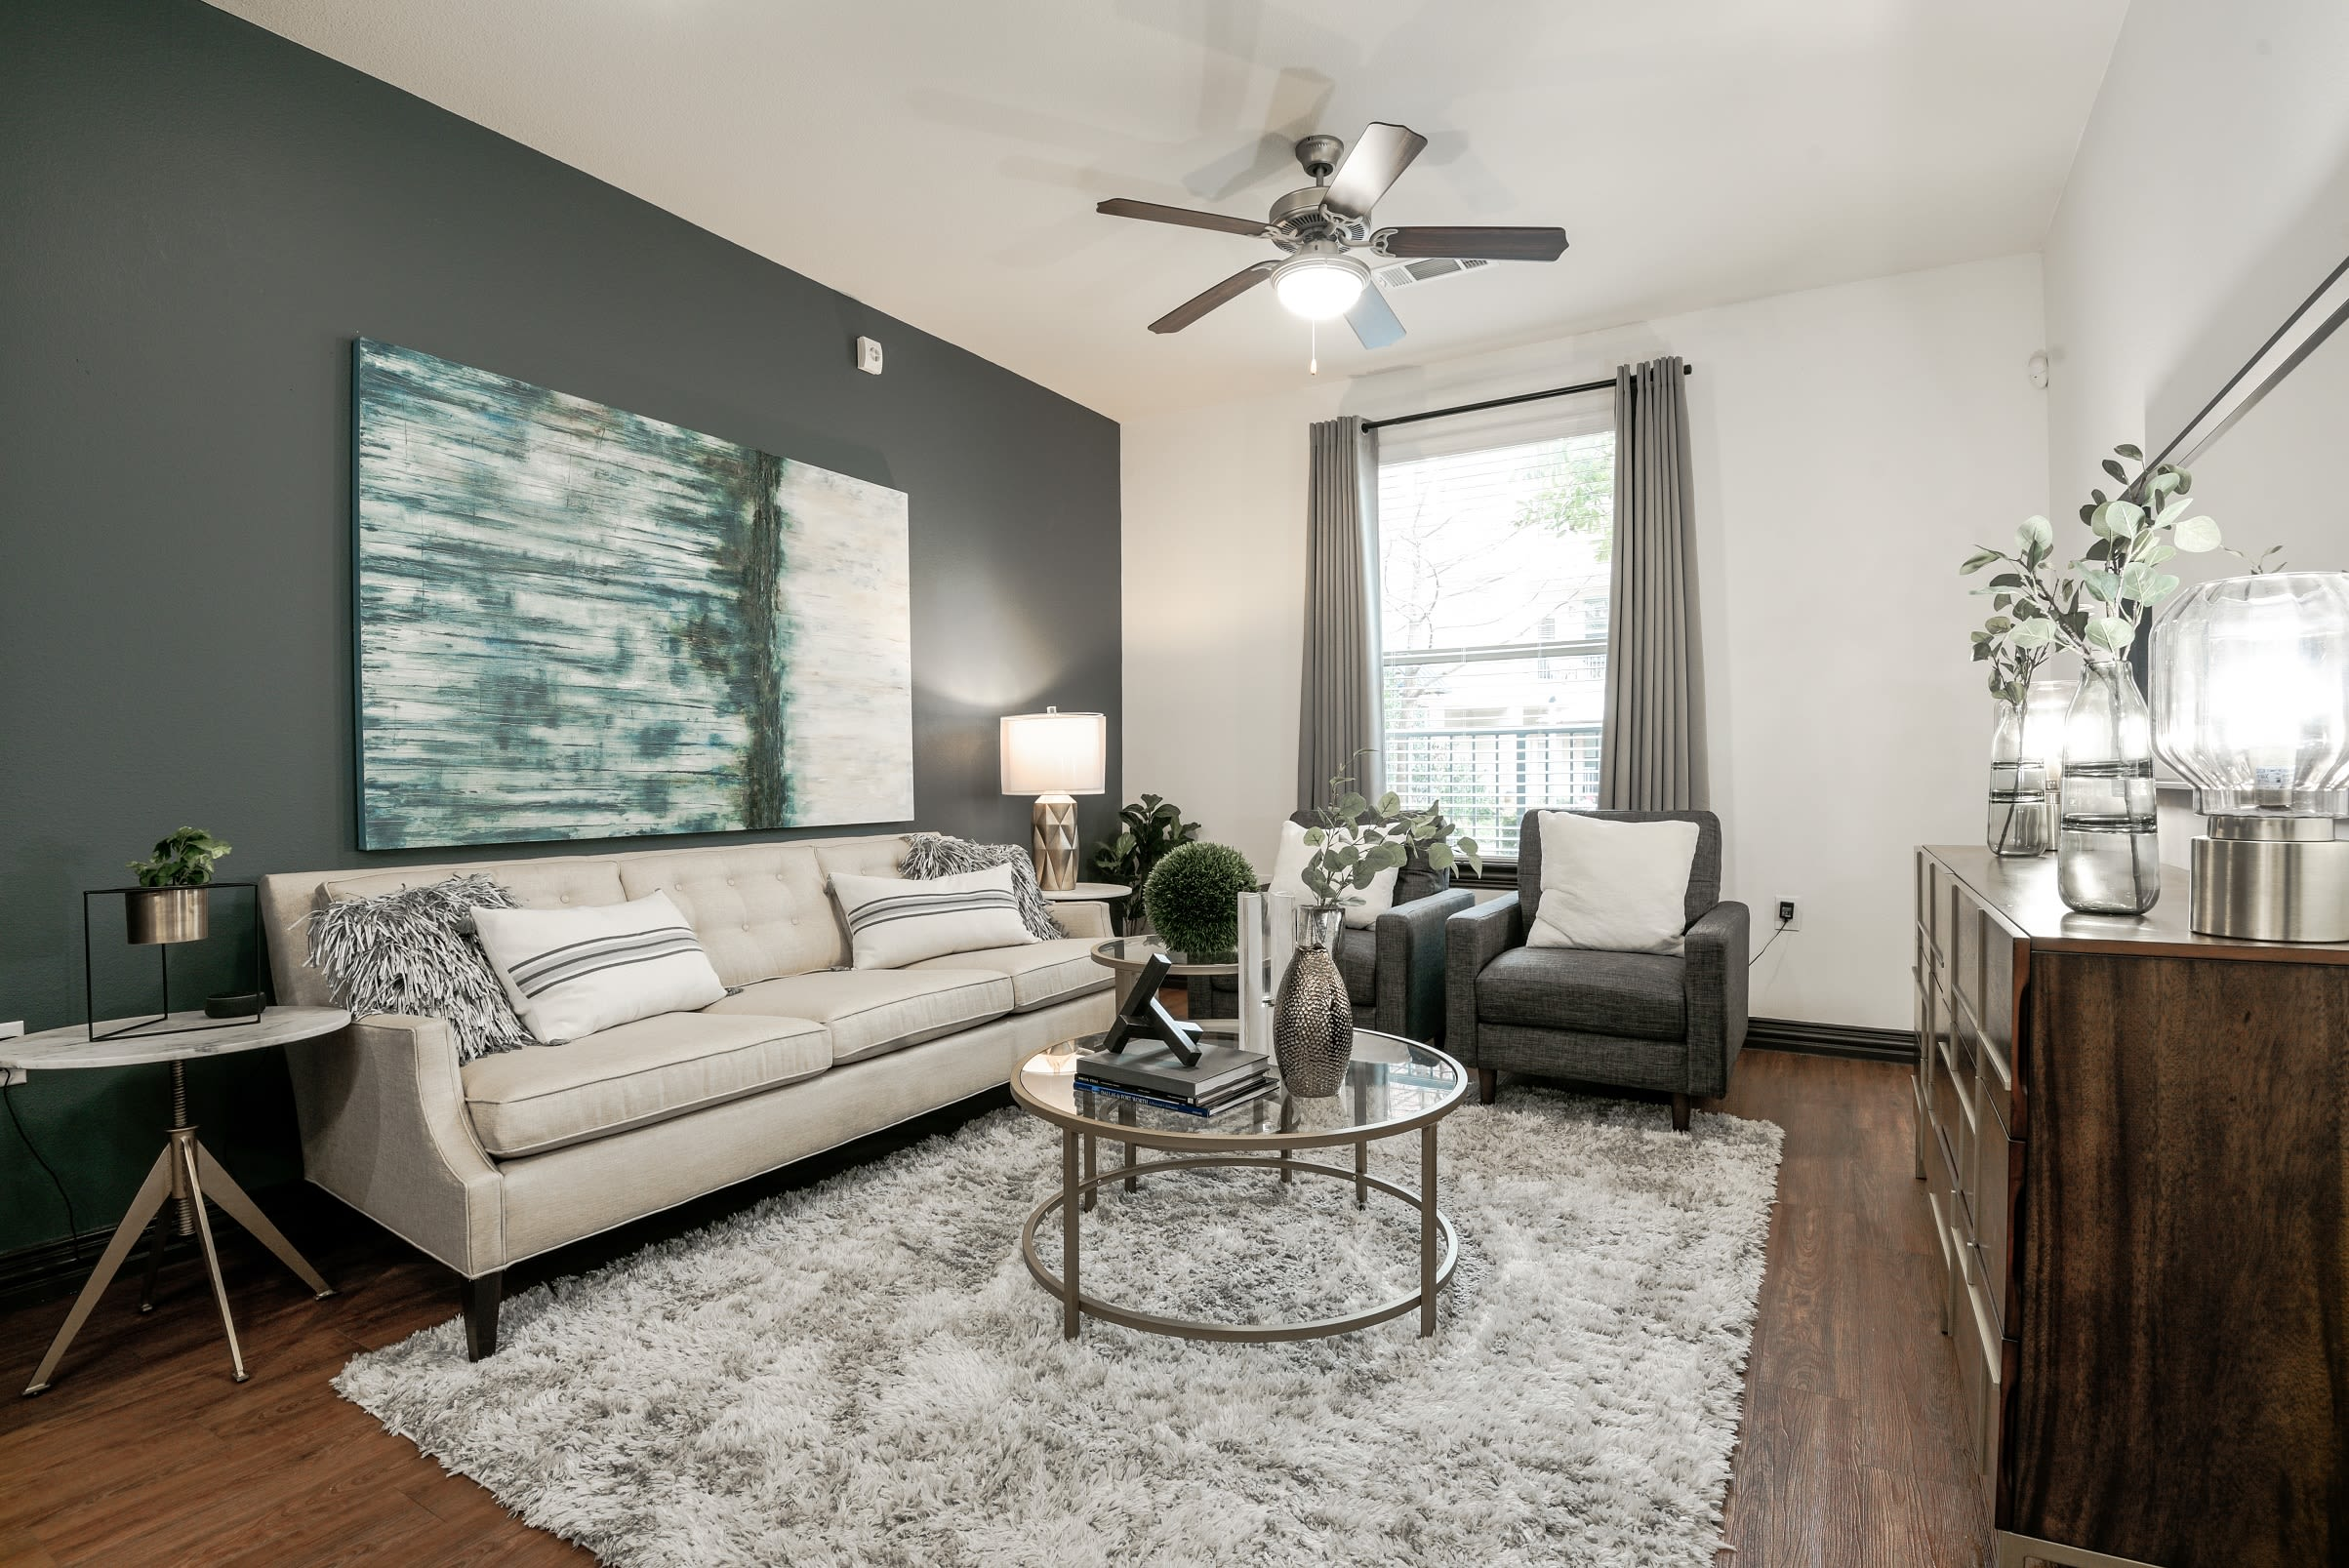 Modern decor living room at The Blvd in Irving, Texas